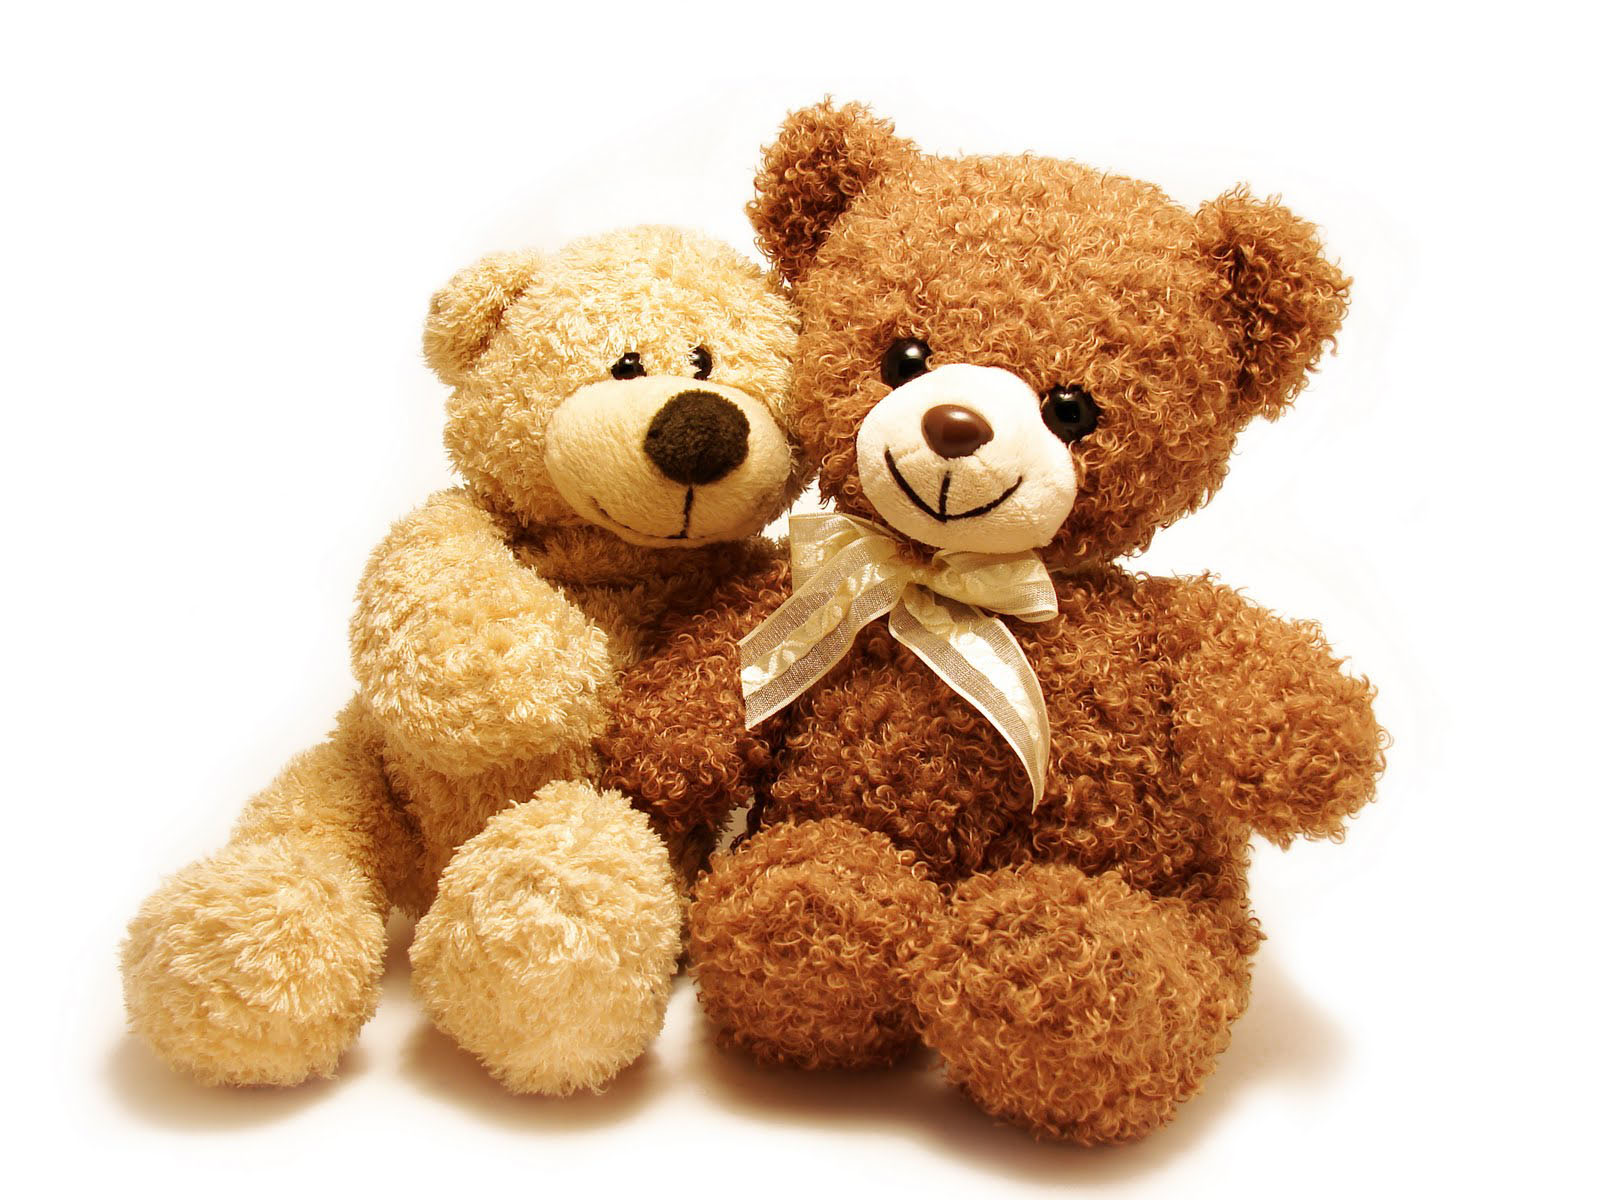 Teddy Bear Wallpaper PC Windows